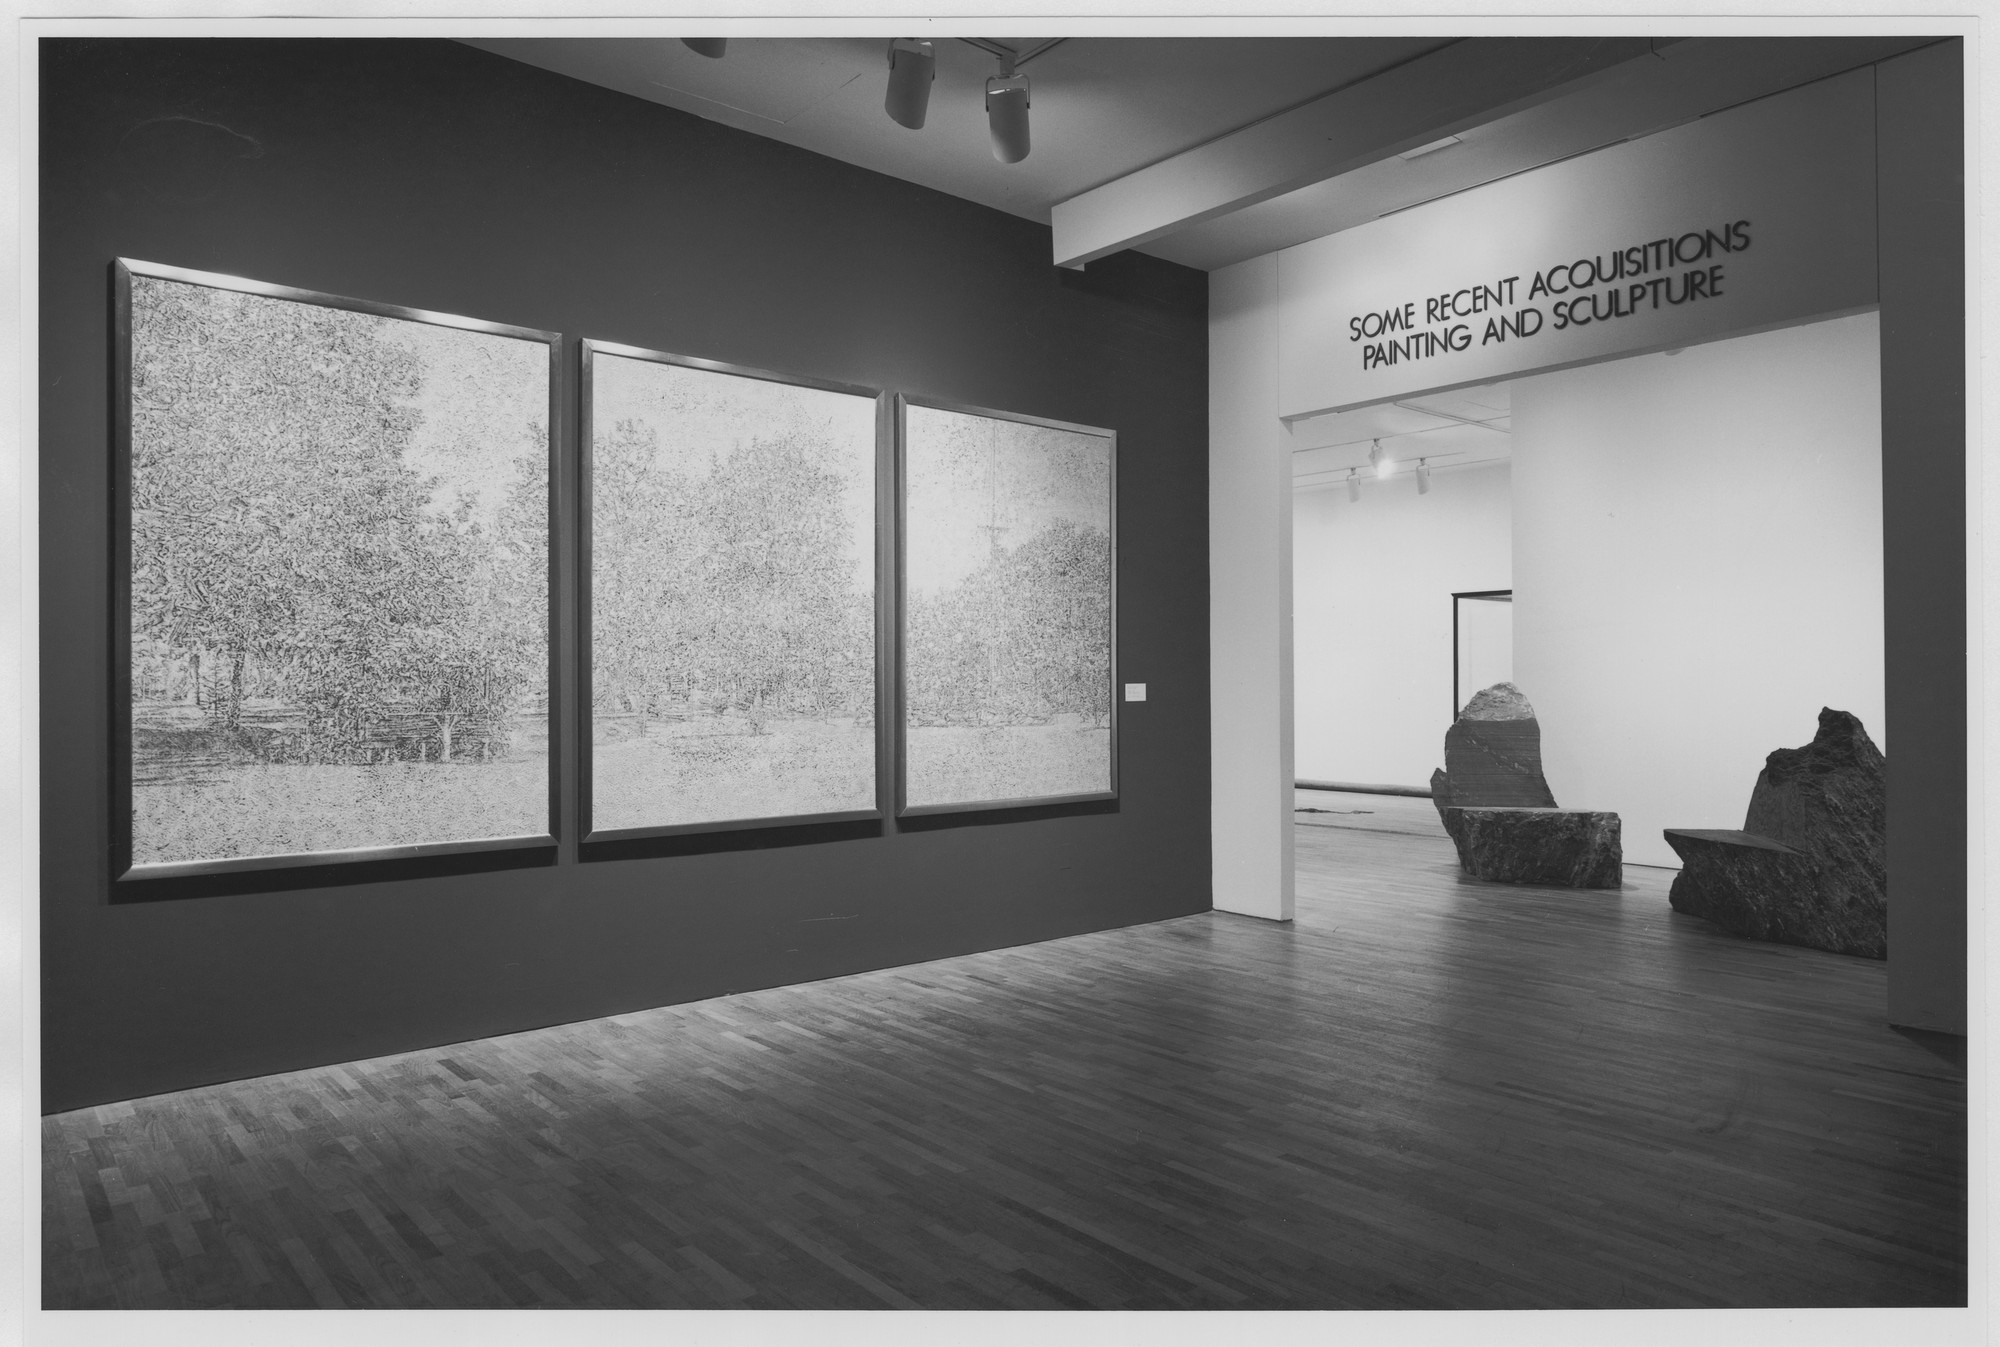 "Installation view of the exhibition, ""Some Recent Acquisitions:  Painting and Sculpture - Part I"" May 27, 1983–October 11, 1983. Photographic Archive. The Museum of Modern Art Archives, New York. IN1354.1. Photograph by Katherine Keller."